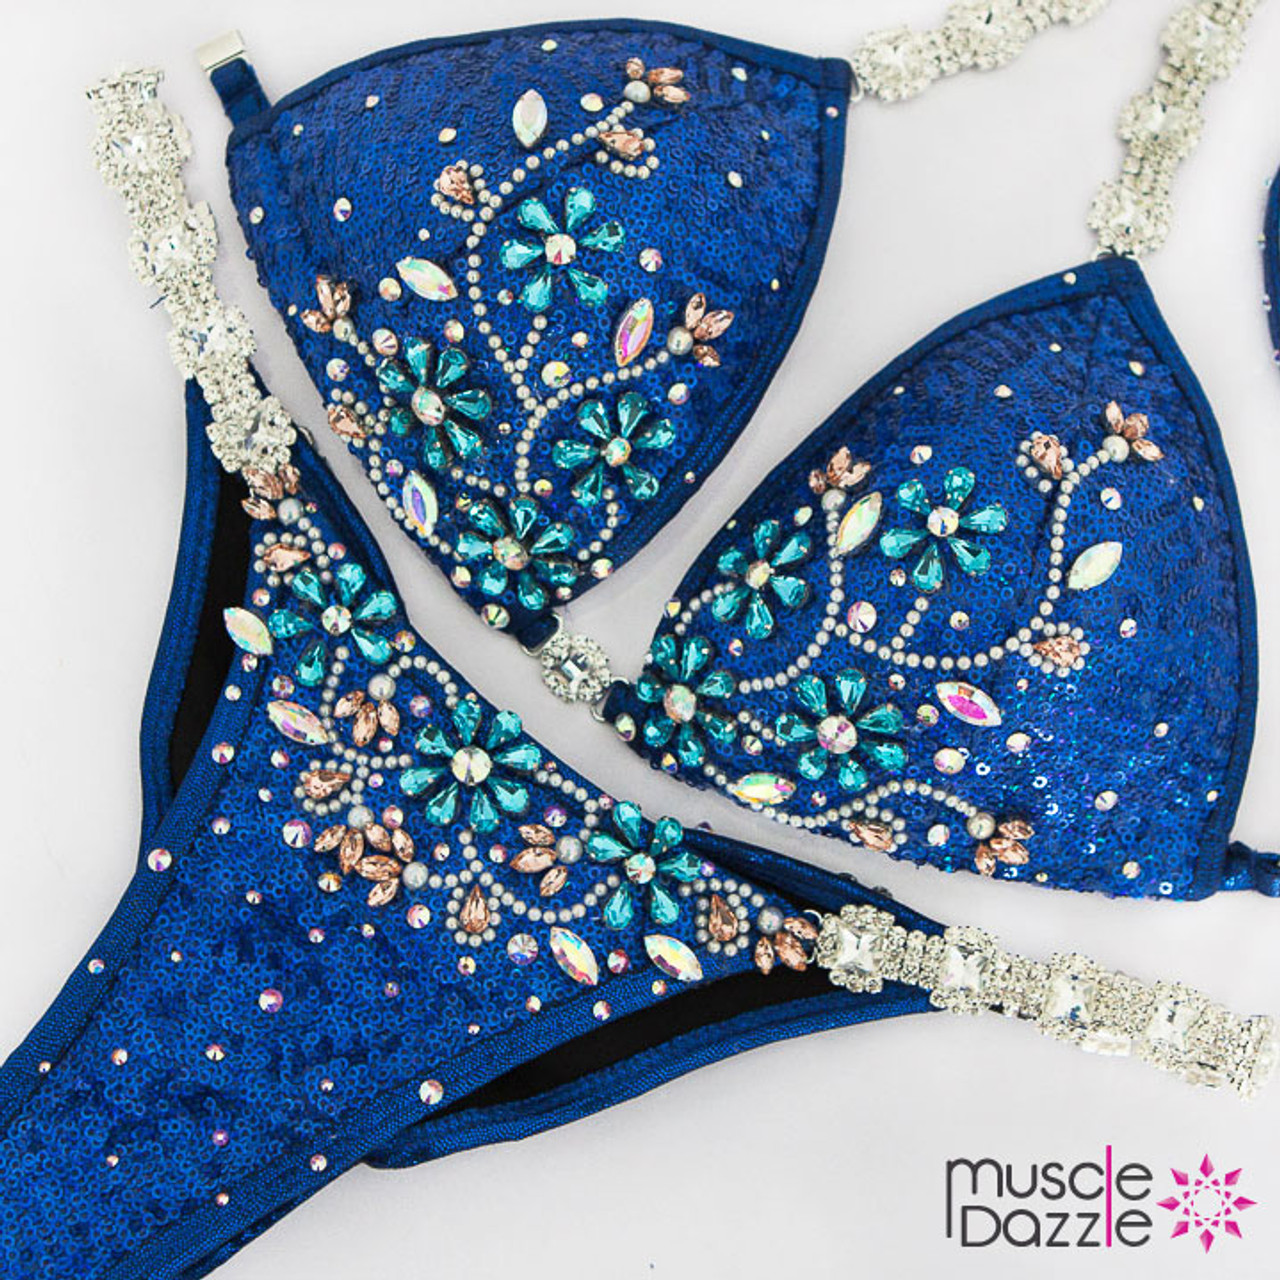 bd881b744f Royal blue sequin competition bikini